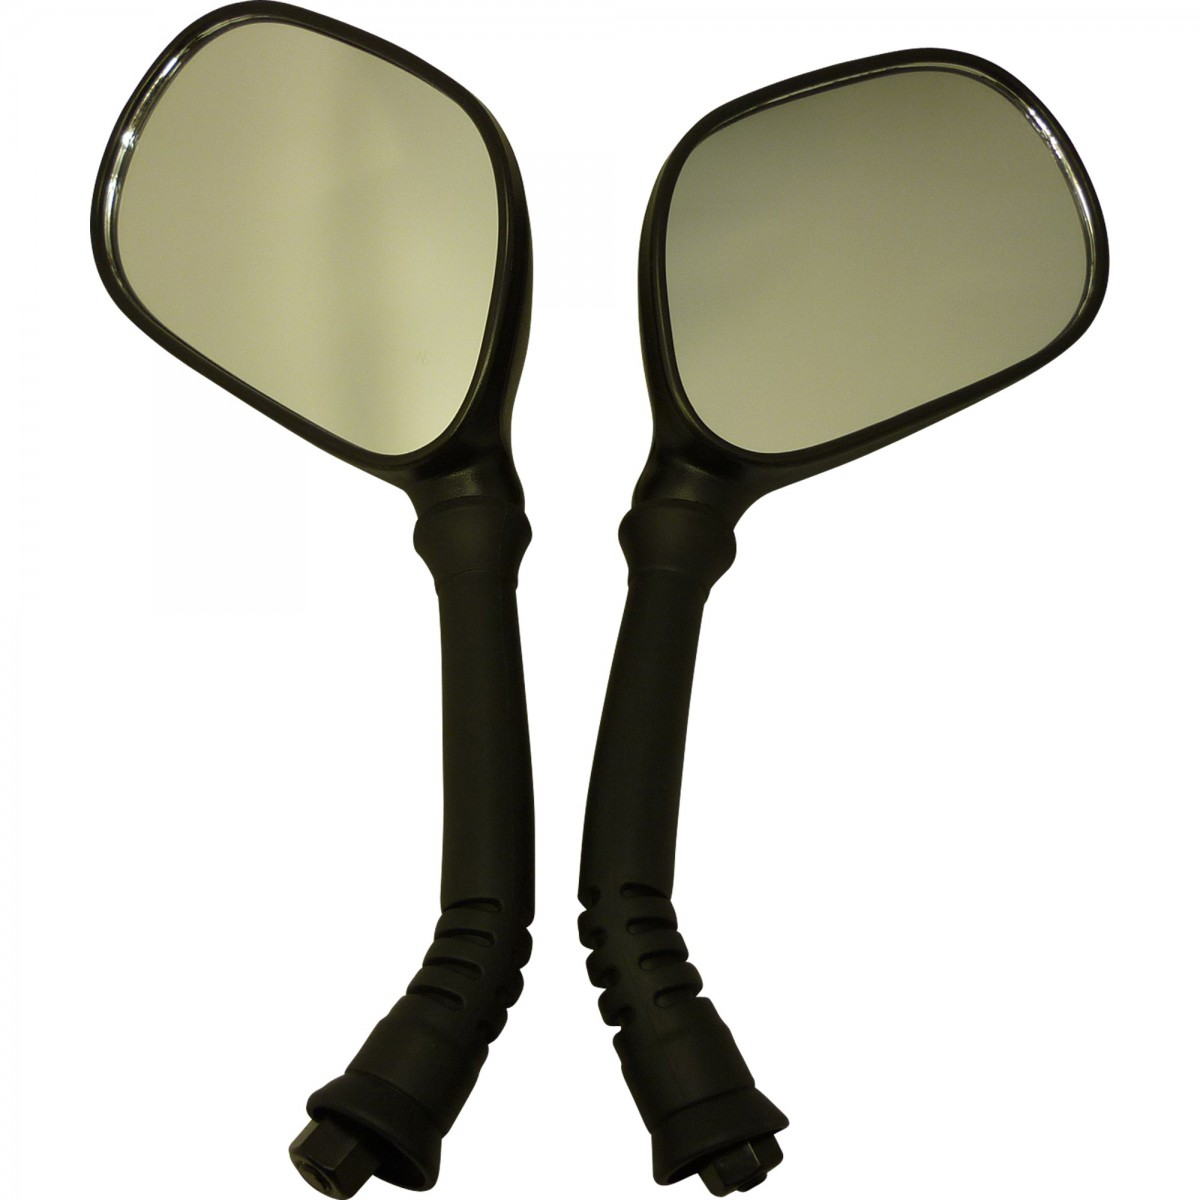 rear view mirror for scooter m8 rr e g sukida jack fox off limit jinan quingqi ebay. Black Bedroom Furniture Sets. Home Design Ideas